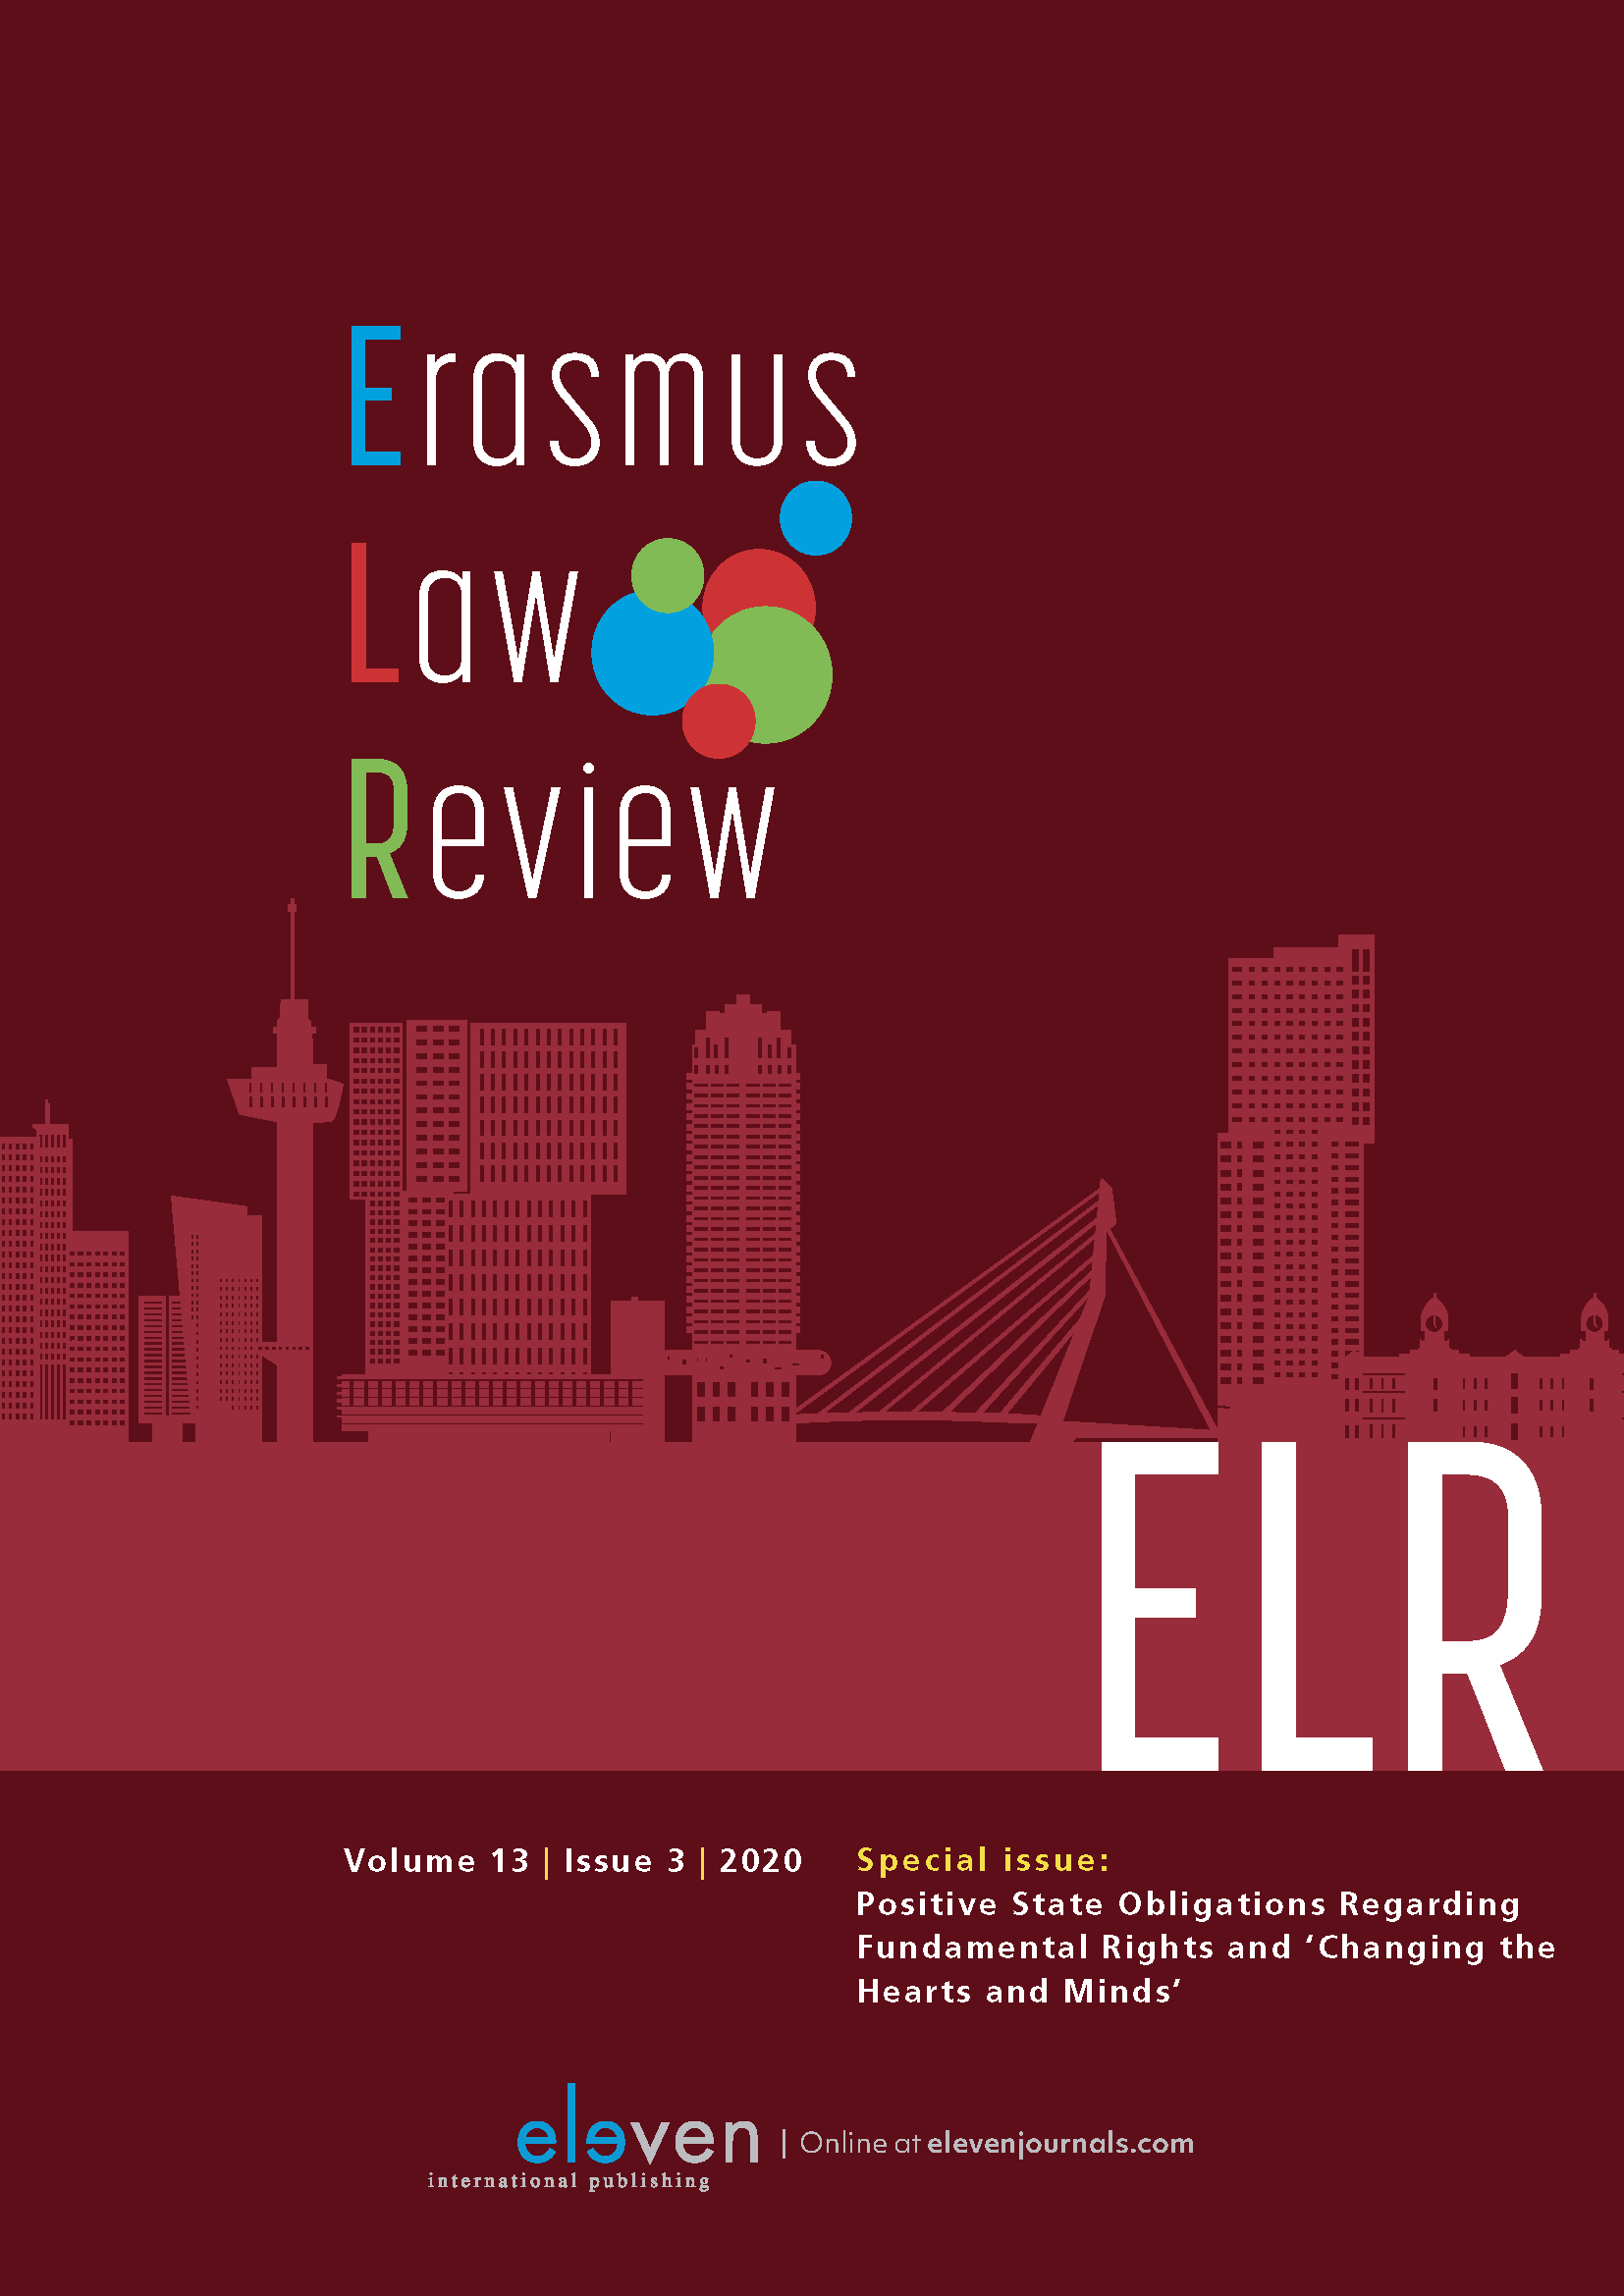 ELR volume 13 issue 1